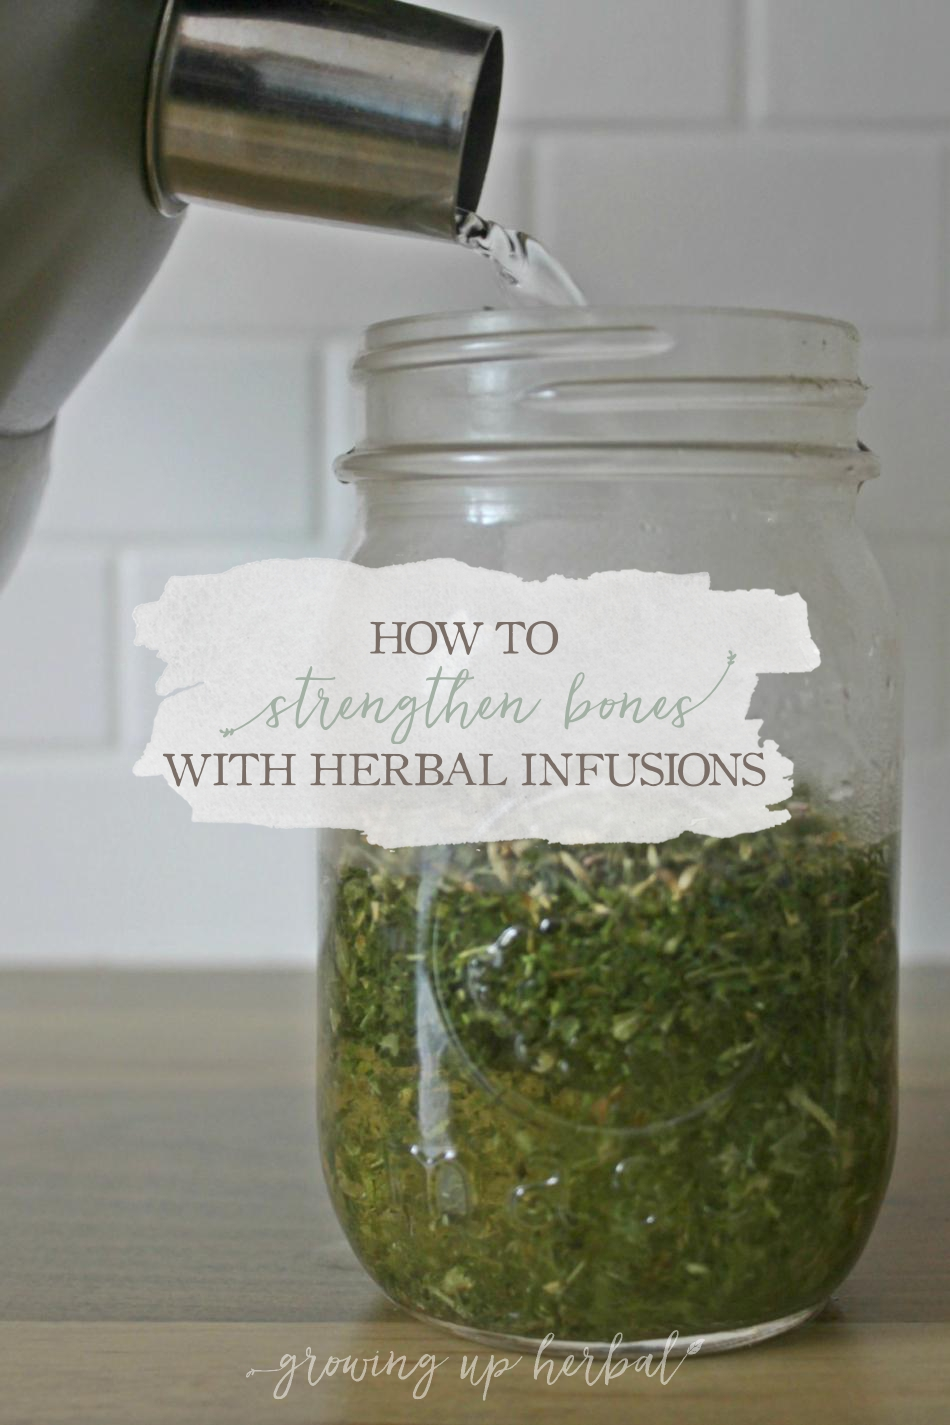 How To Strengthen Bones With Herbal Infusions | Growing Up Herbal | Learn how to strengthen and support bones with herbal infusions. Plus, get a recipe for a DIY healthy bone infusion too!